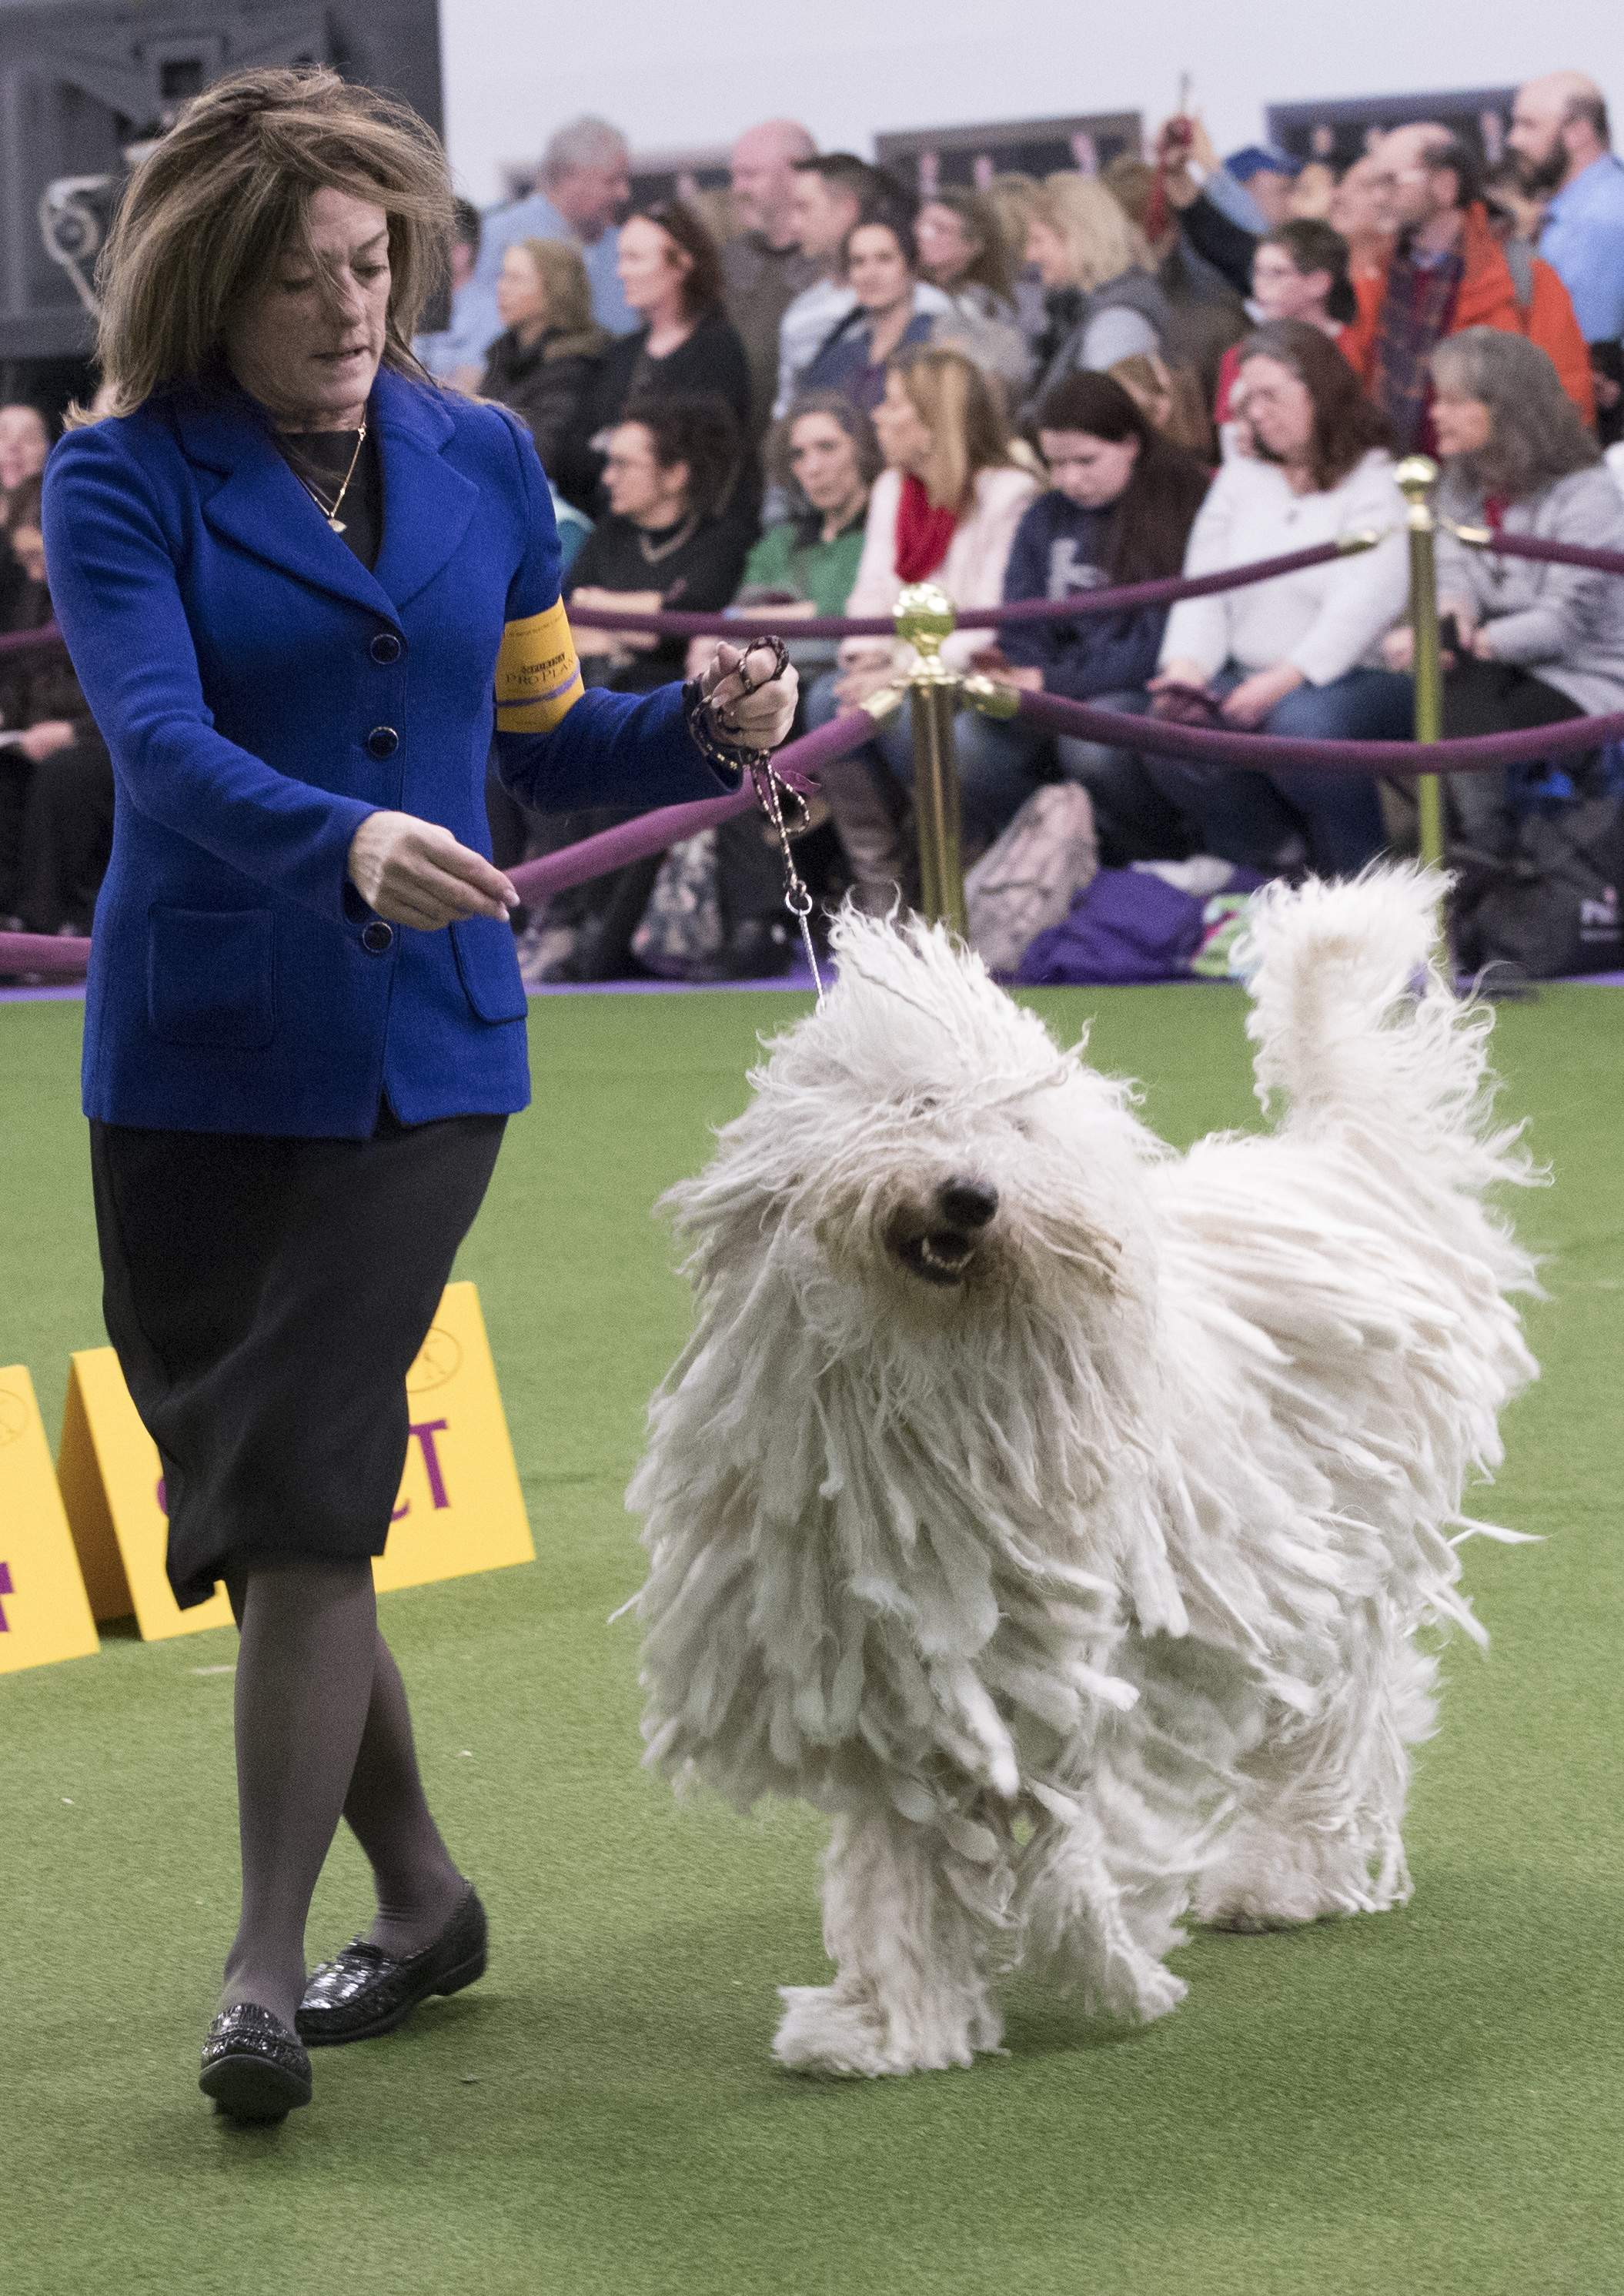 Nina Fetter present Betty Boop, a Komondor, in the ring during the 141st Westminster Kennel Club Dog Show, Tuesday, Feb. 14, 2017, in New York. THE ASSOCIATED PRESS